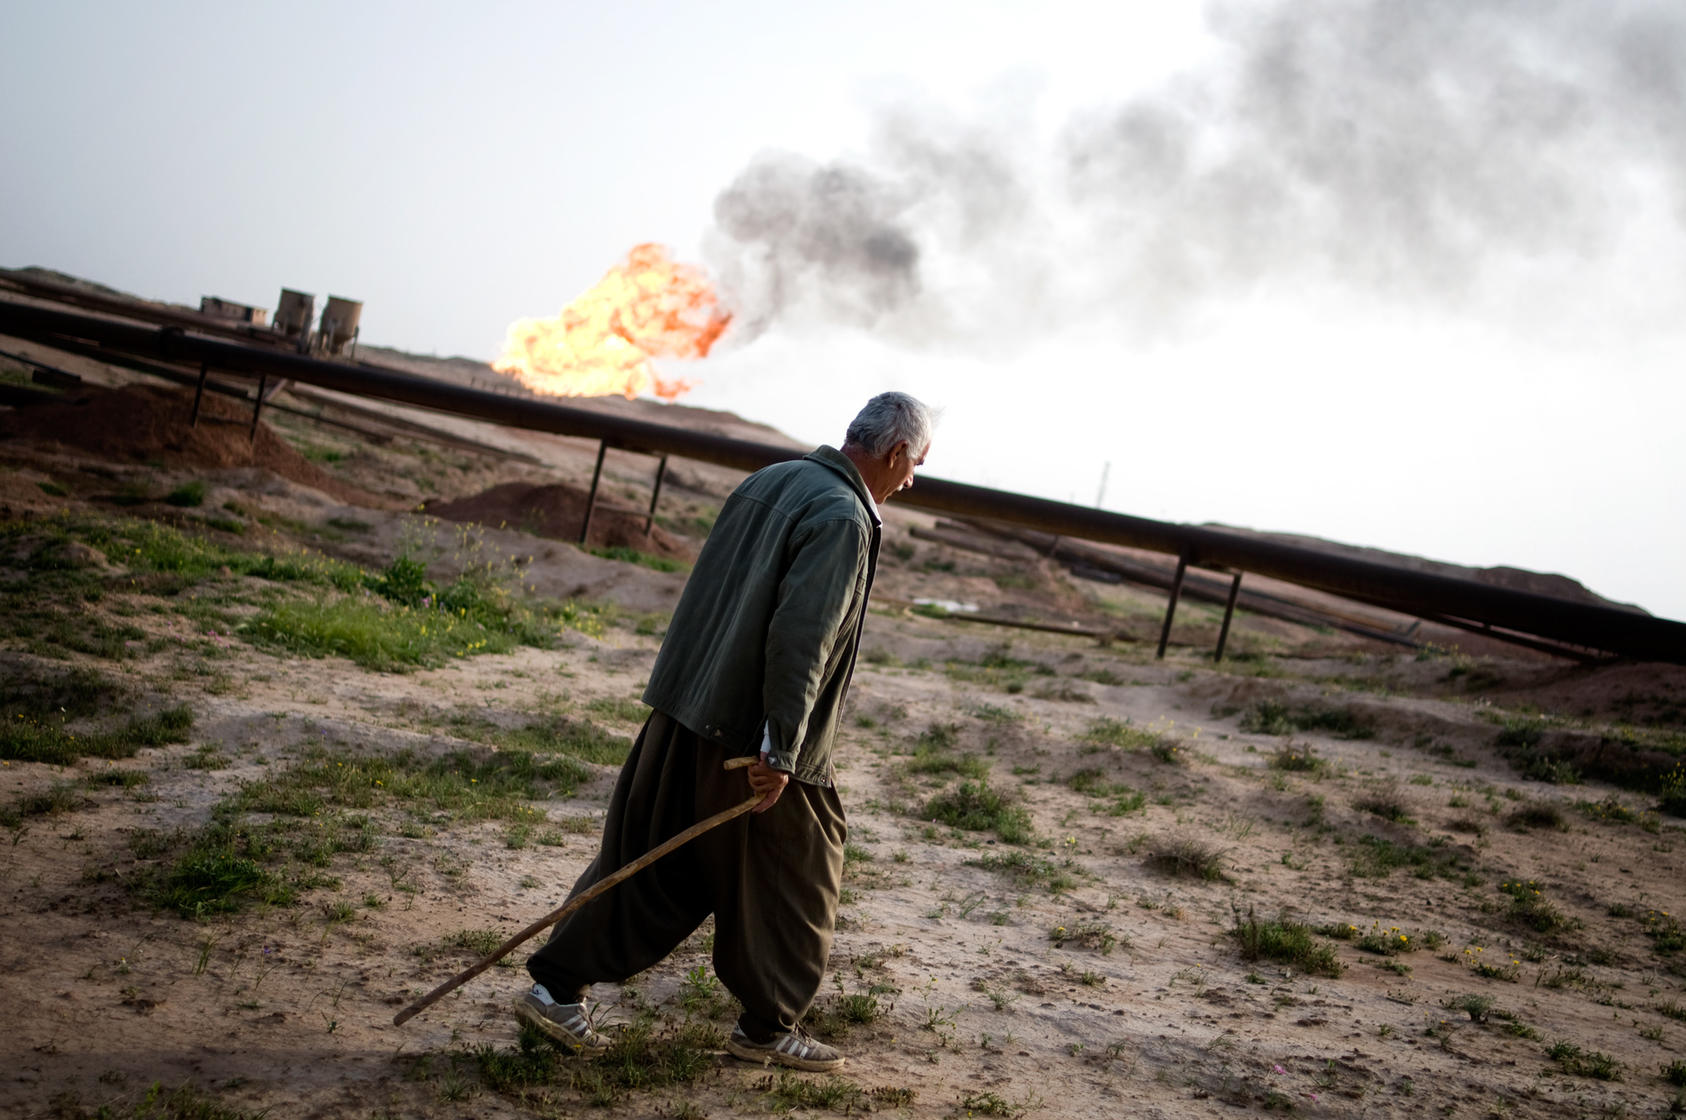 A Kurdish shepherd passes a flare from an oil well in Kirkuk, Iraq, March 12, 2010. Iraqi Kurds are selling oil and natural gas directly to Turkey, infuriating Washington and the central government in Baghdad, which fear that oil independence could lead Kurds to declare a broad independence and the fracturing of the nation. (Ayman Oghanna/The New York Times)